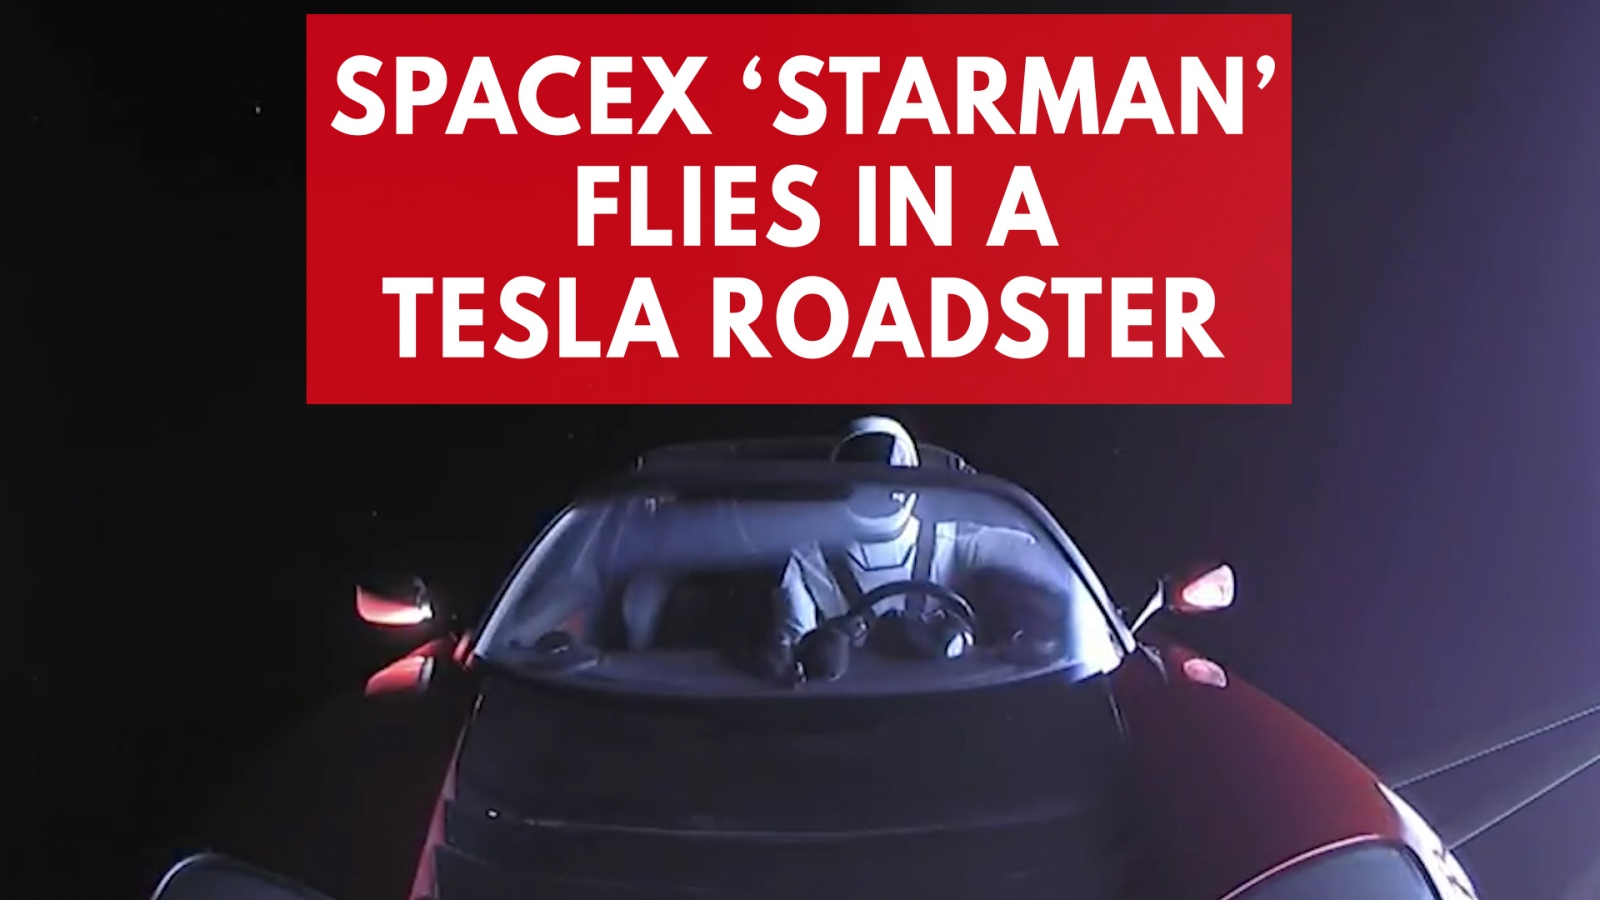 spacex-starman-flies-by-earth-in-tesla-roadster